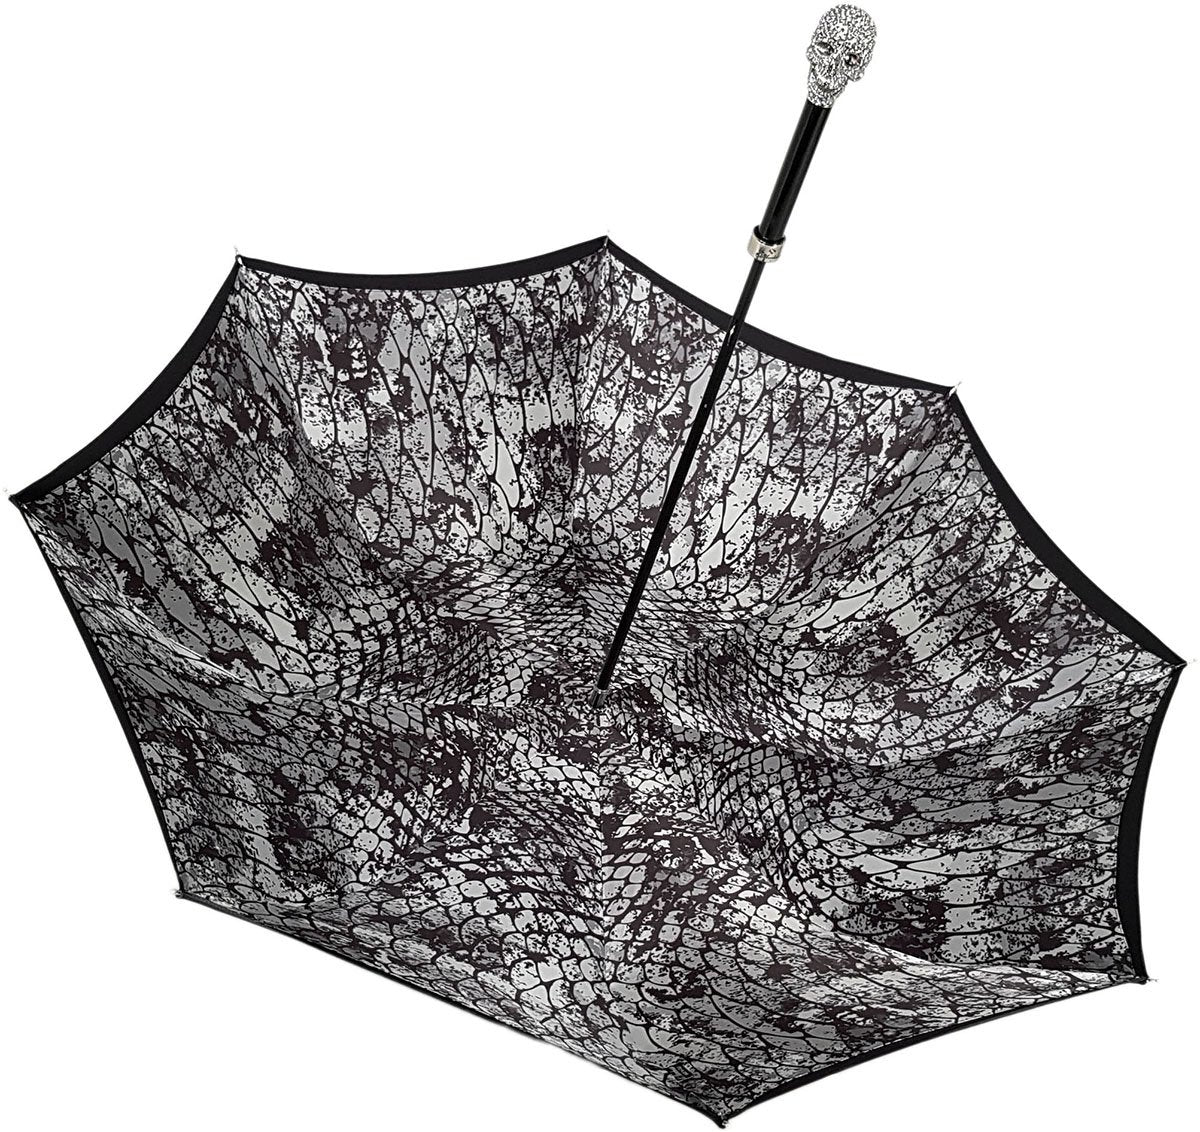 Amazin Lux Silver Swarovski Skull Umbrella - Double Cloth